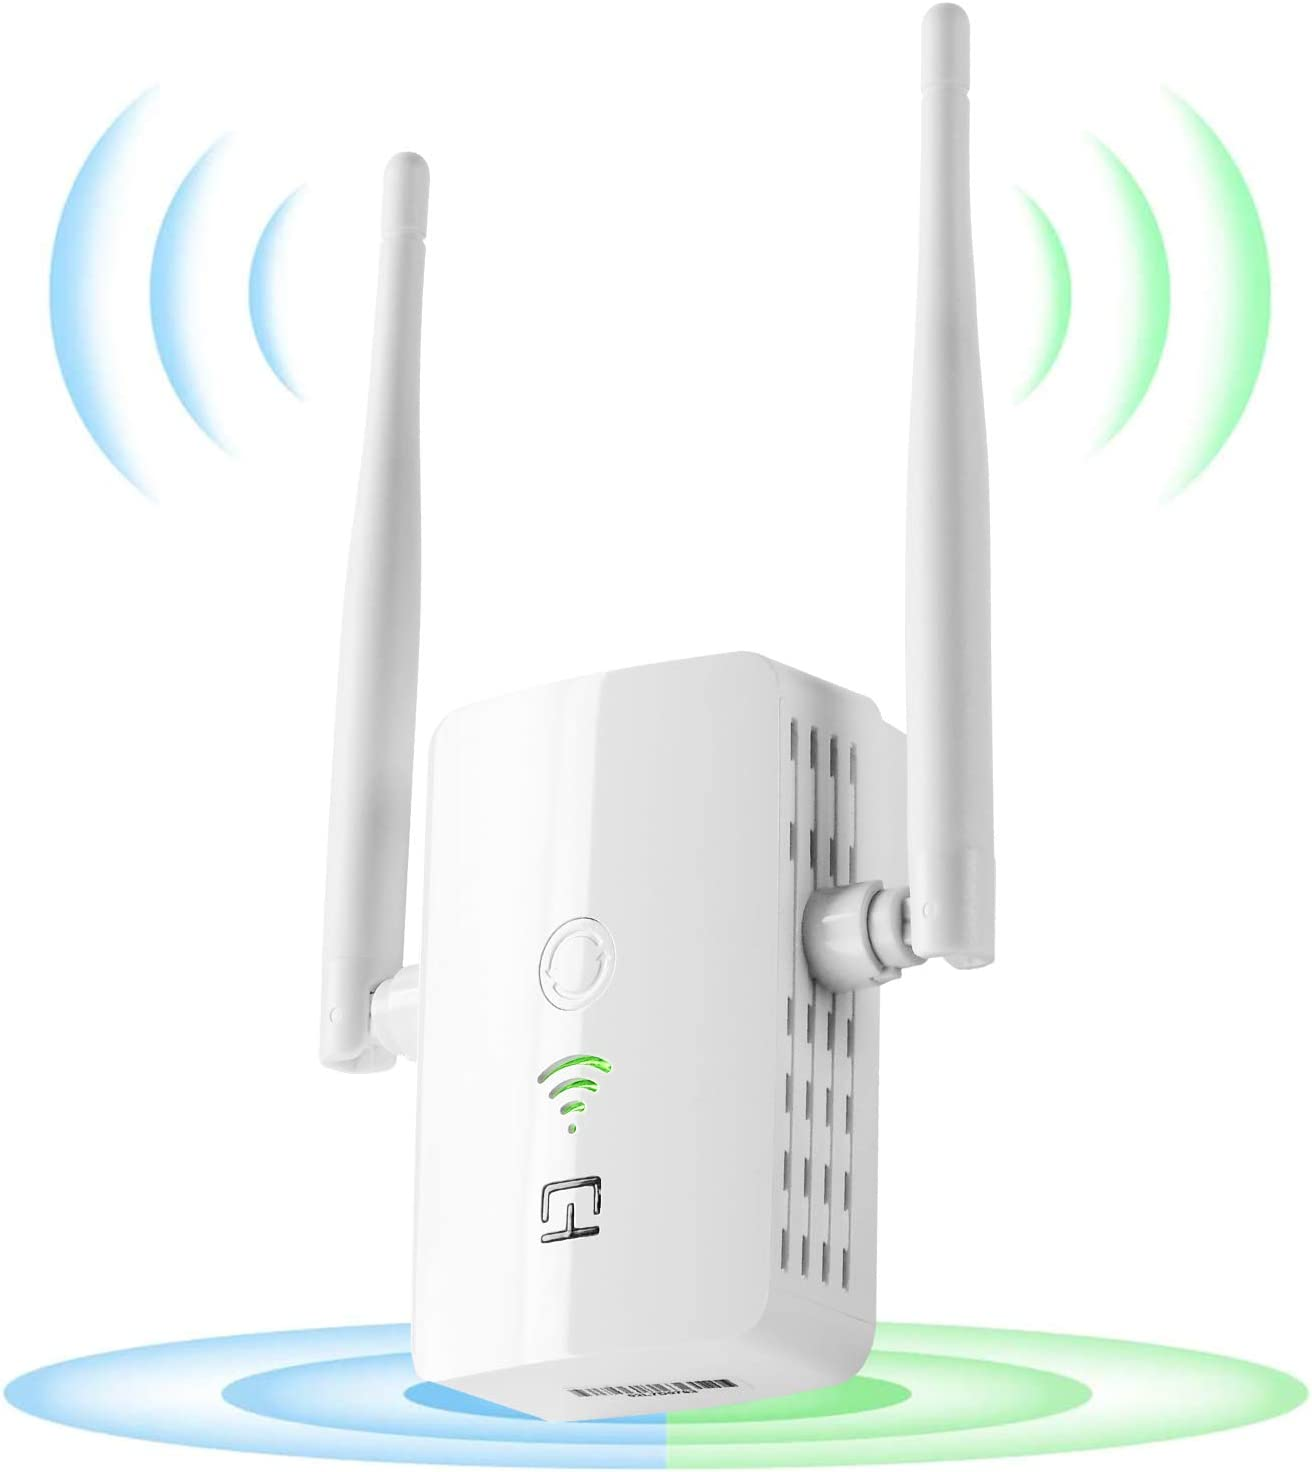 WiFi Range Extender 1200 Mbps, 2.4 & 5GHz Dual Band Network,Wireless Signal Booster & Repeater With WPS Button for WiFi Internet Connection, Easy Set Up,Coverage Up to 3000 Sq Ft & 32 Devices